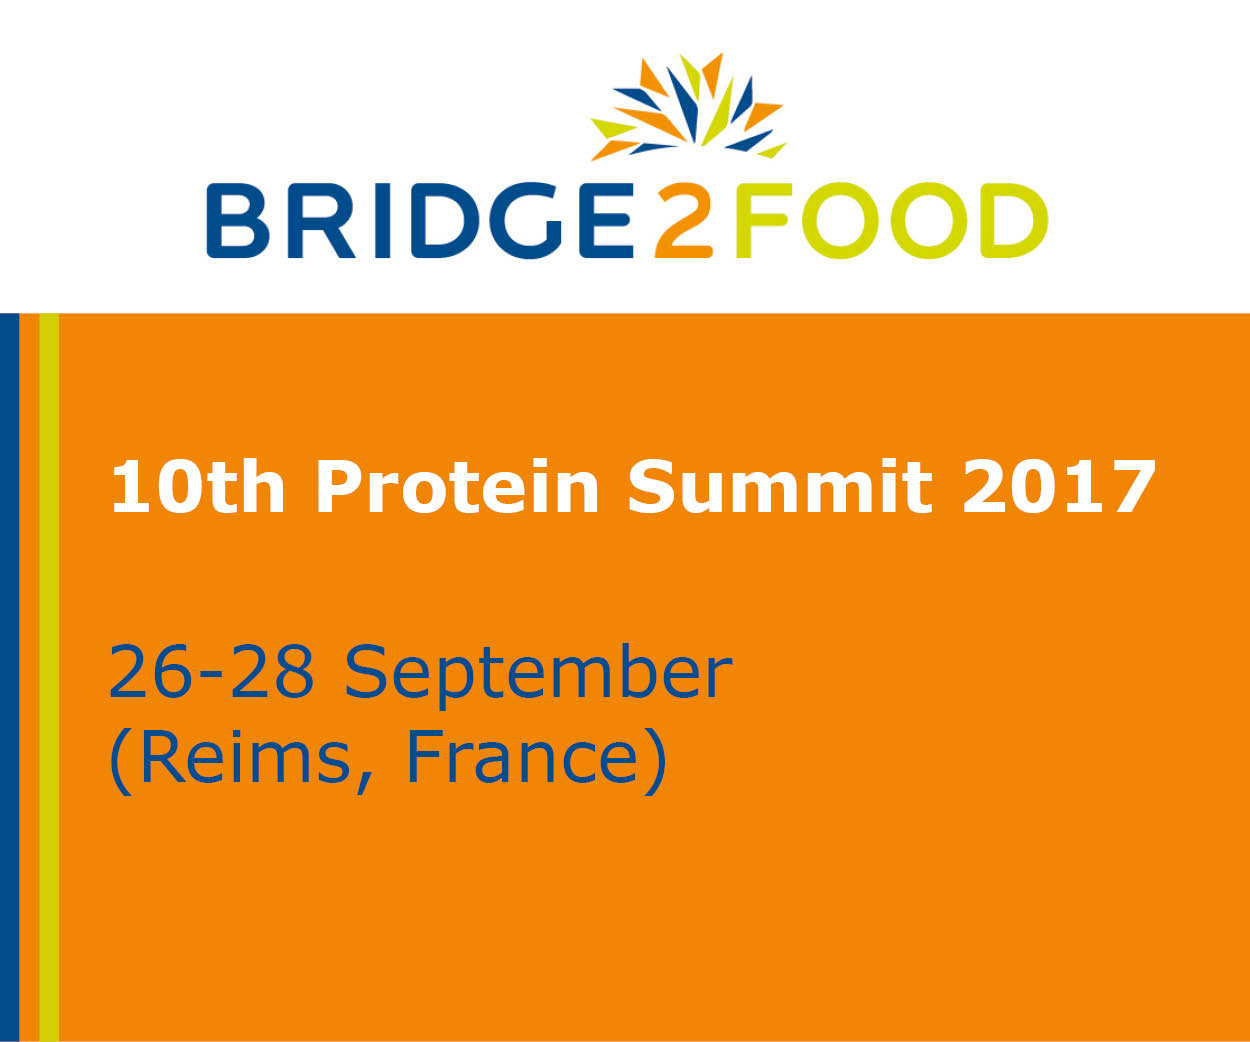 Bridge2Food Banner NBR 2017 Protein Summit 300x250